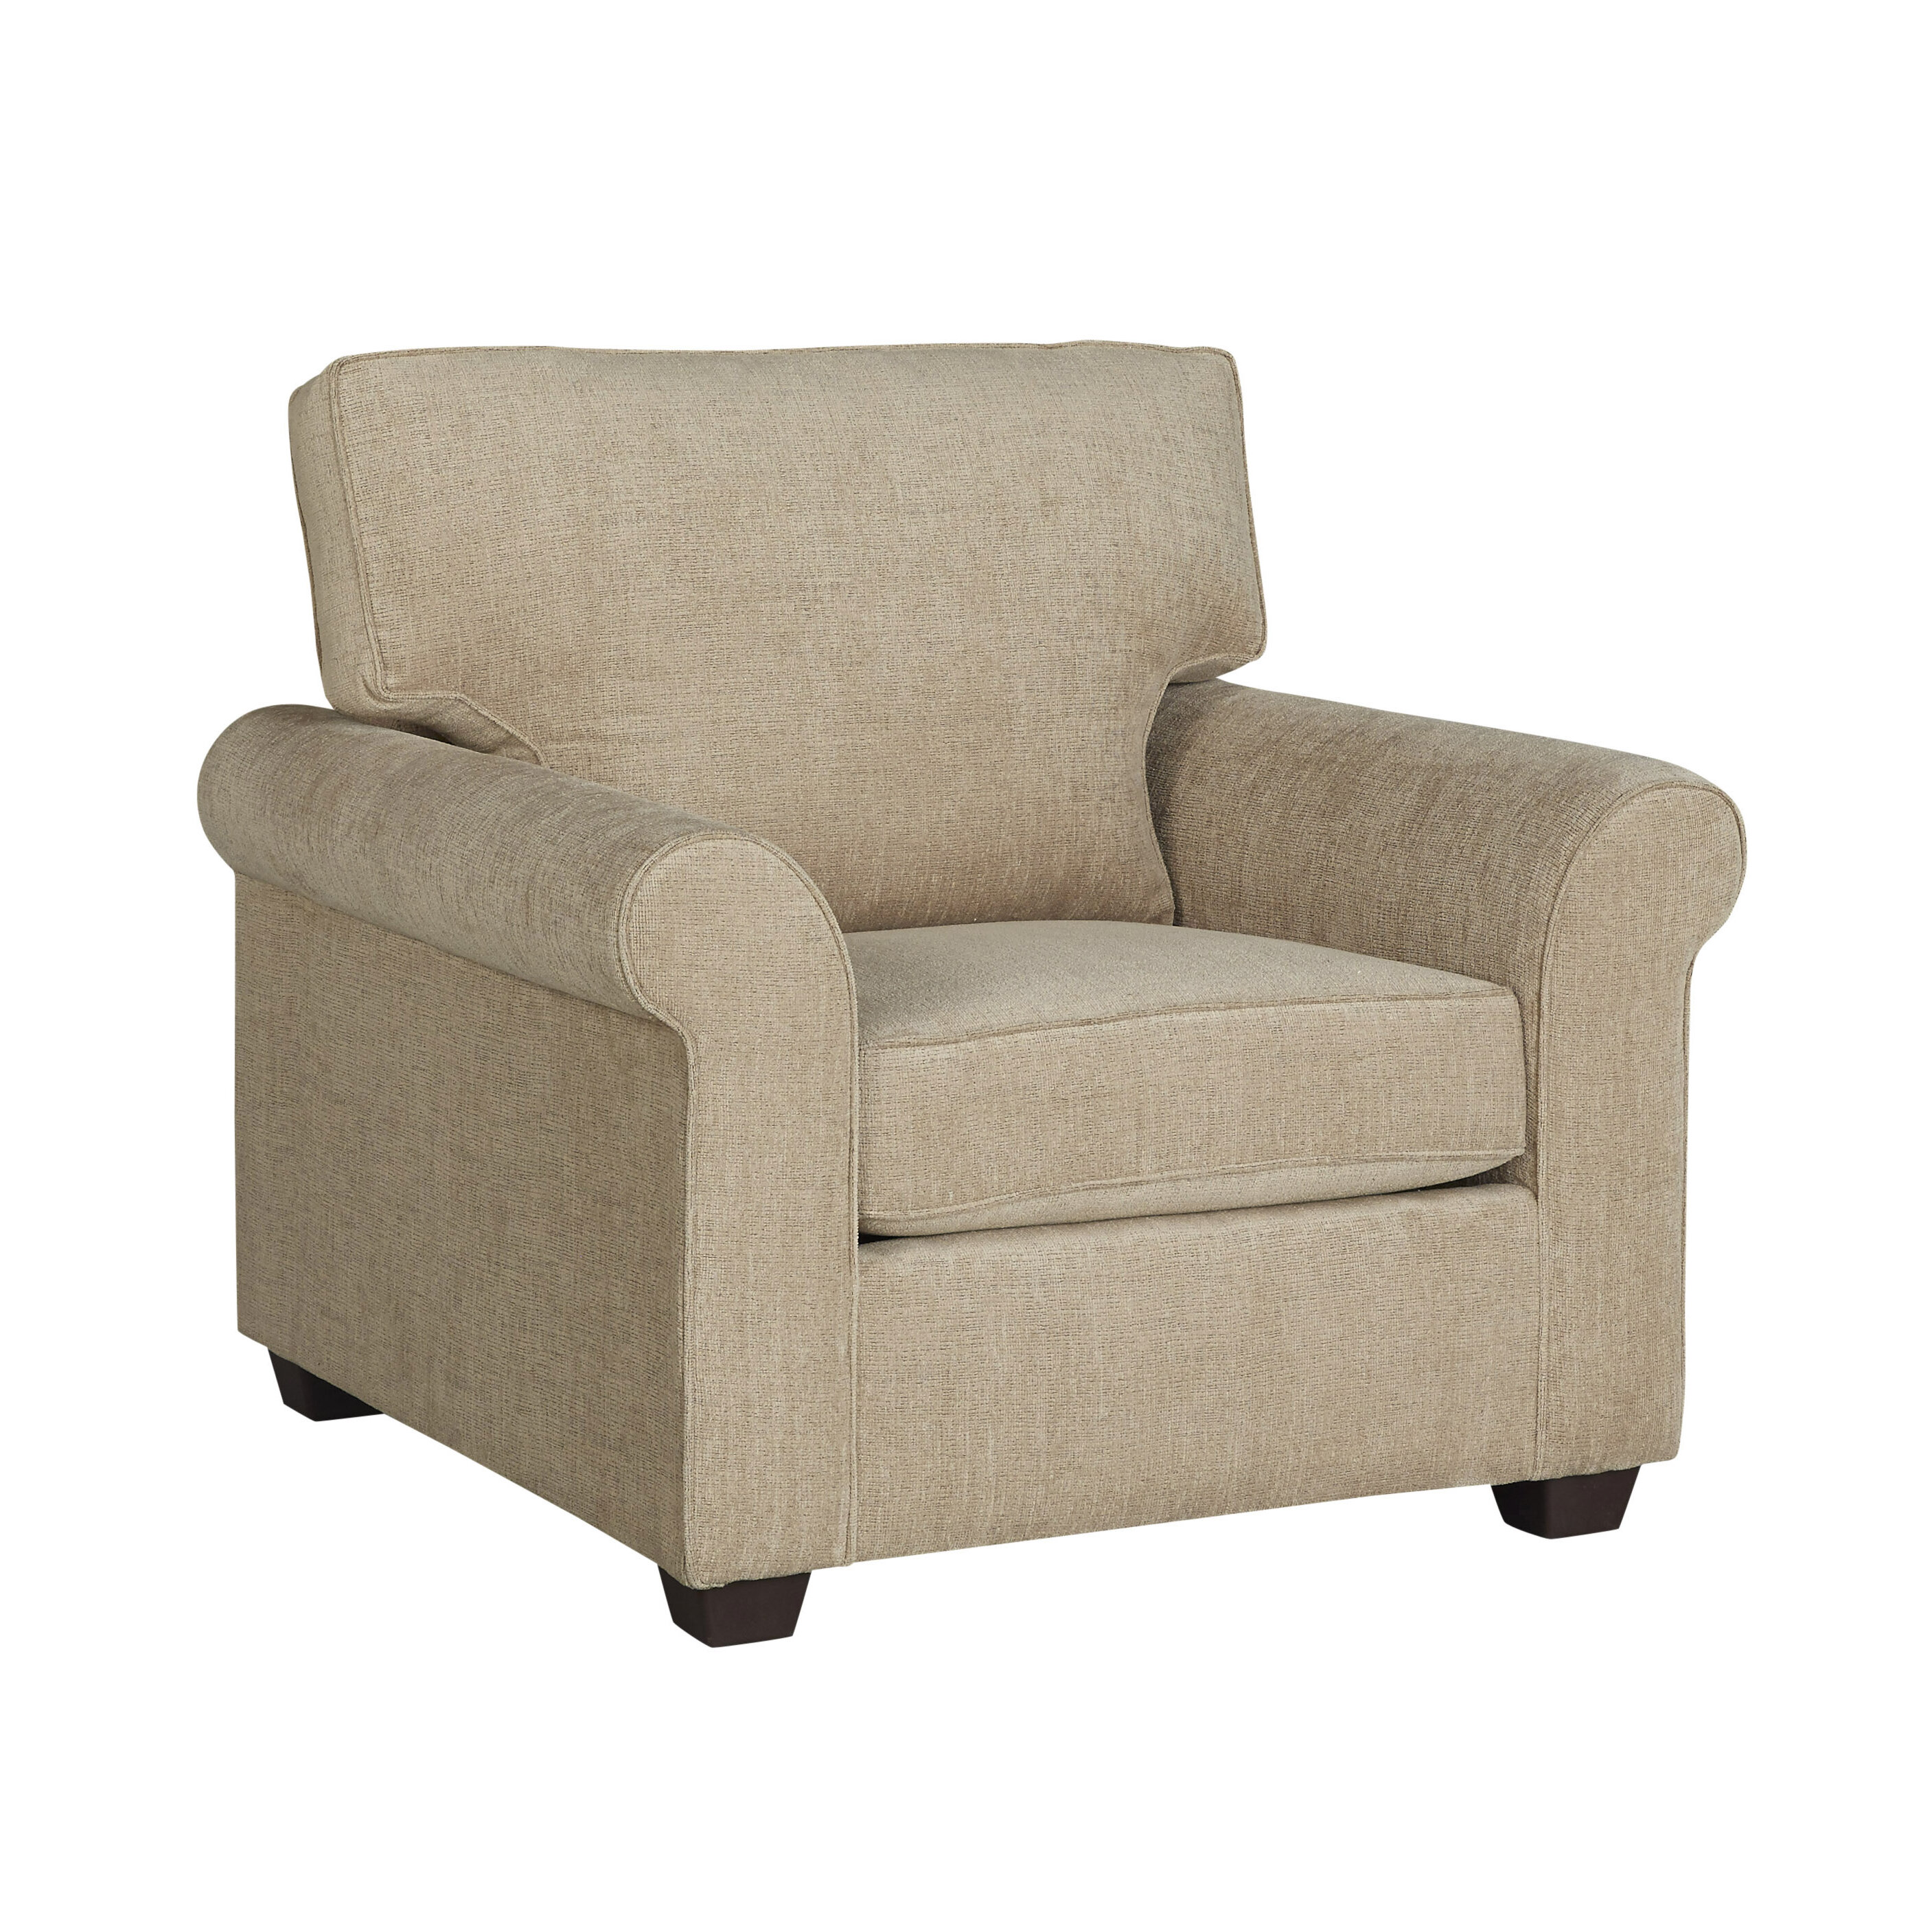 Bon Red Barrel Studio Glastonbury Upholstered Armchair U0026 Reviews | Wayfair